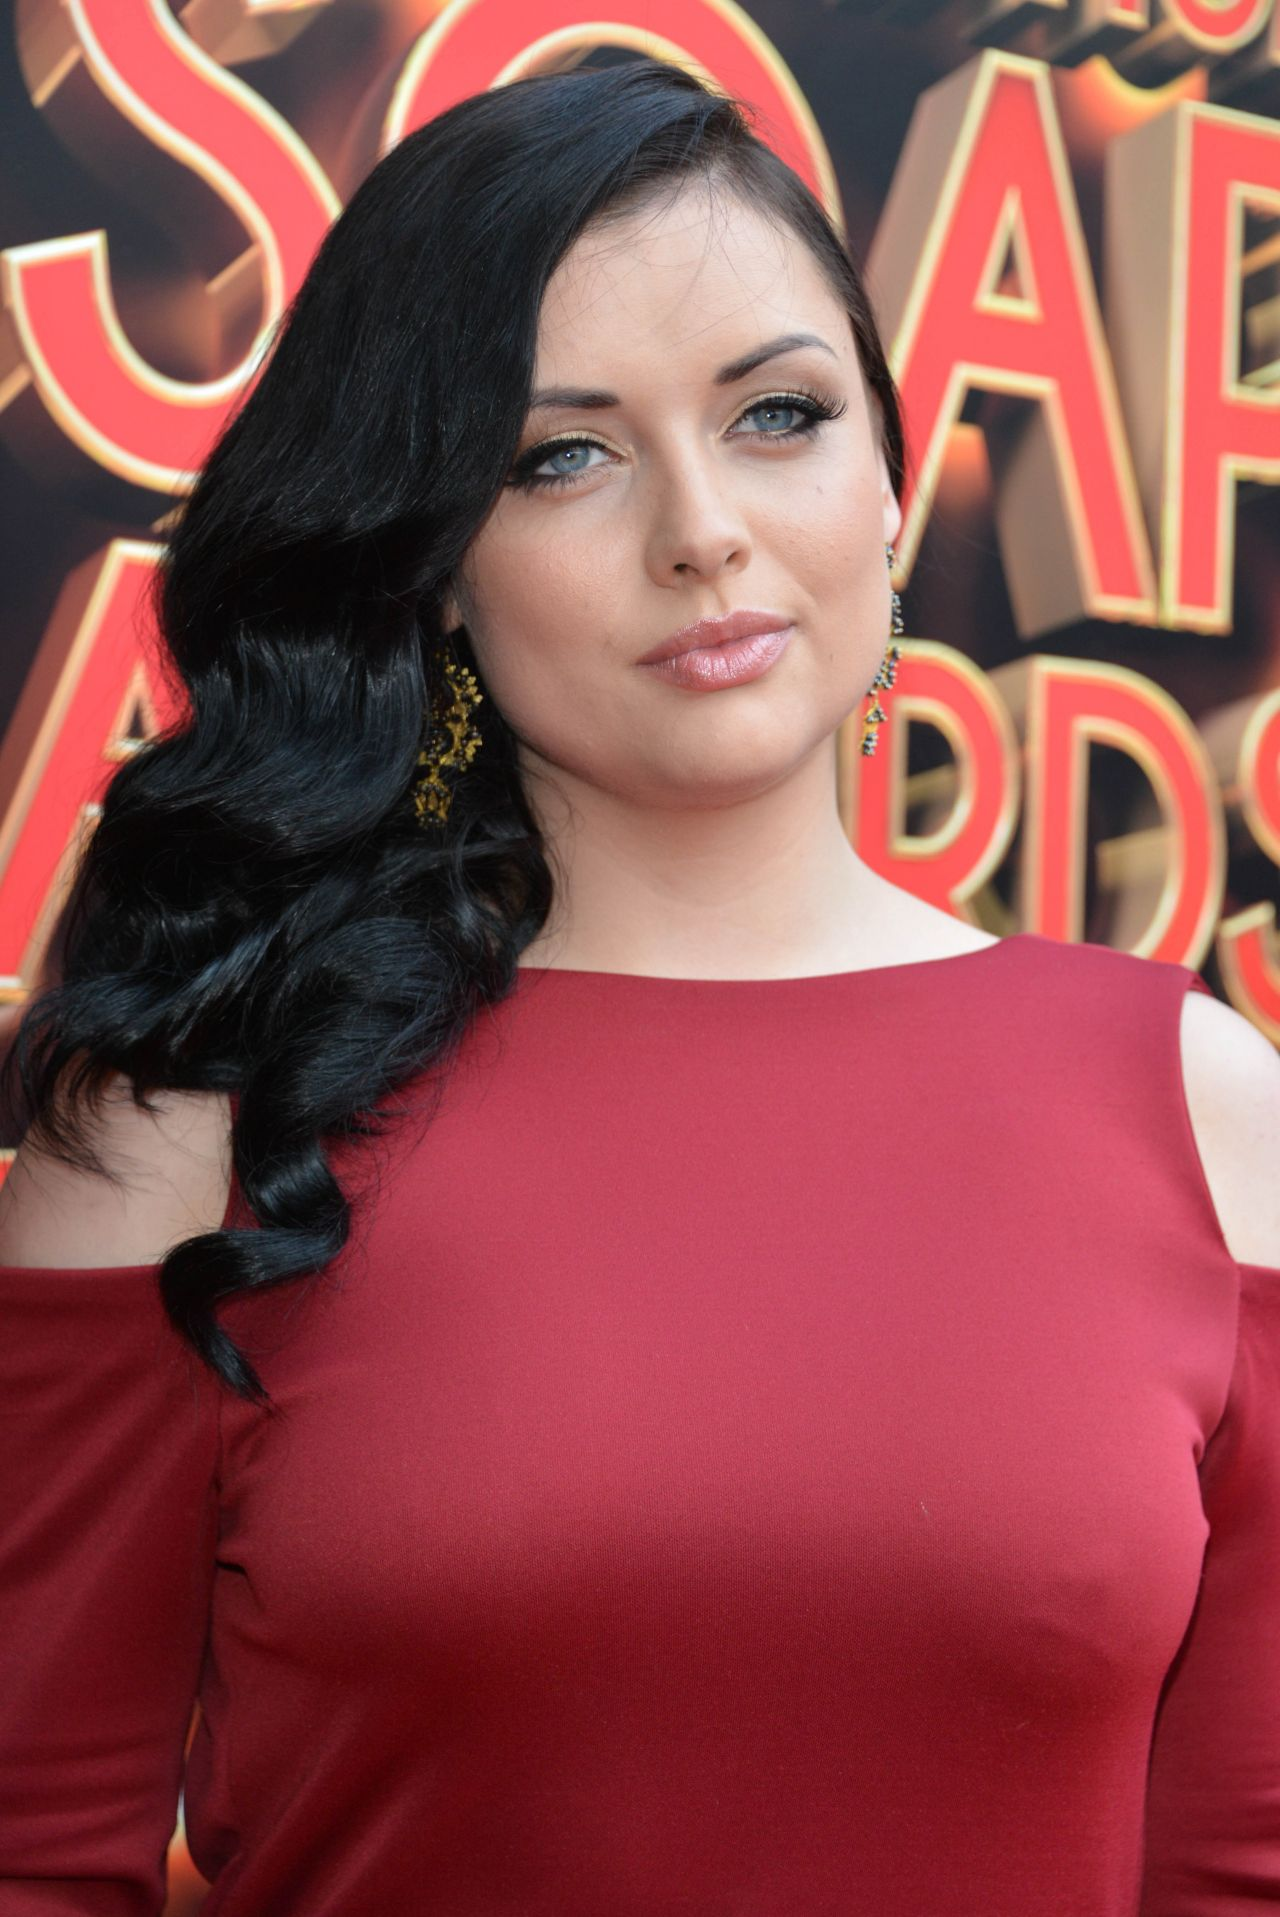 shona mcgarty 2014 british soap awards in london 1 The Slaters: Here's How Different The EastEnders Actors Look Away From The Cameras